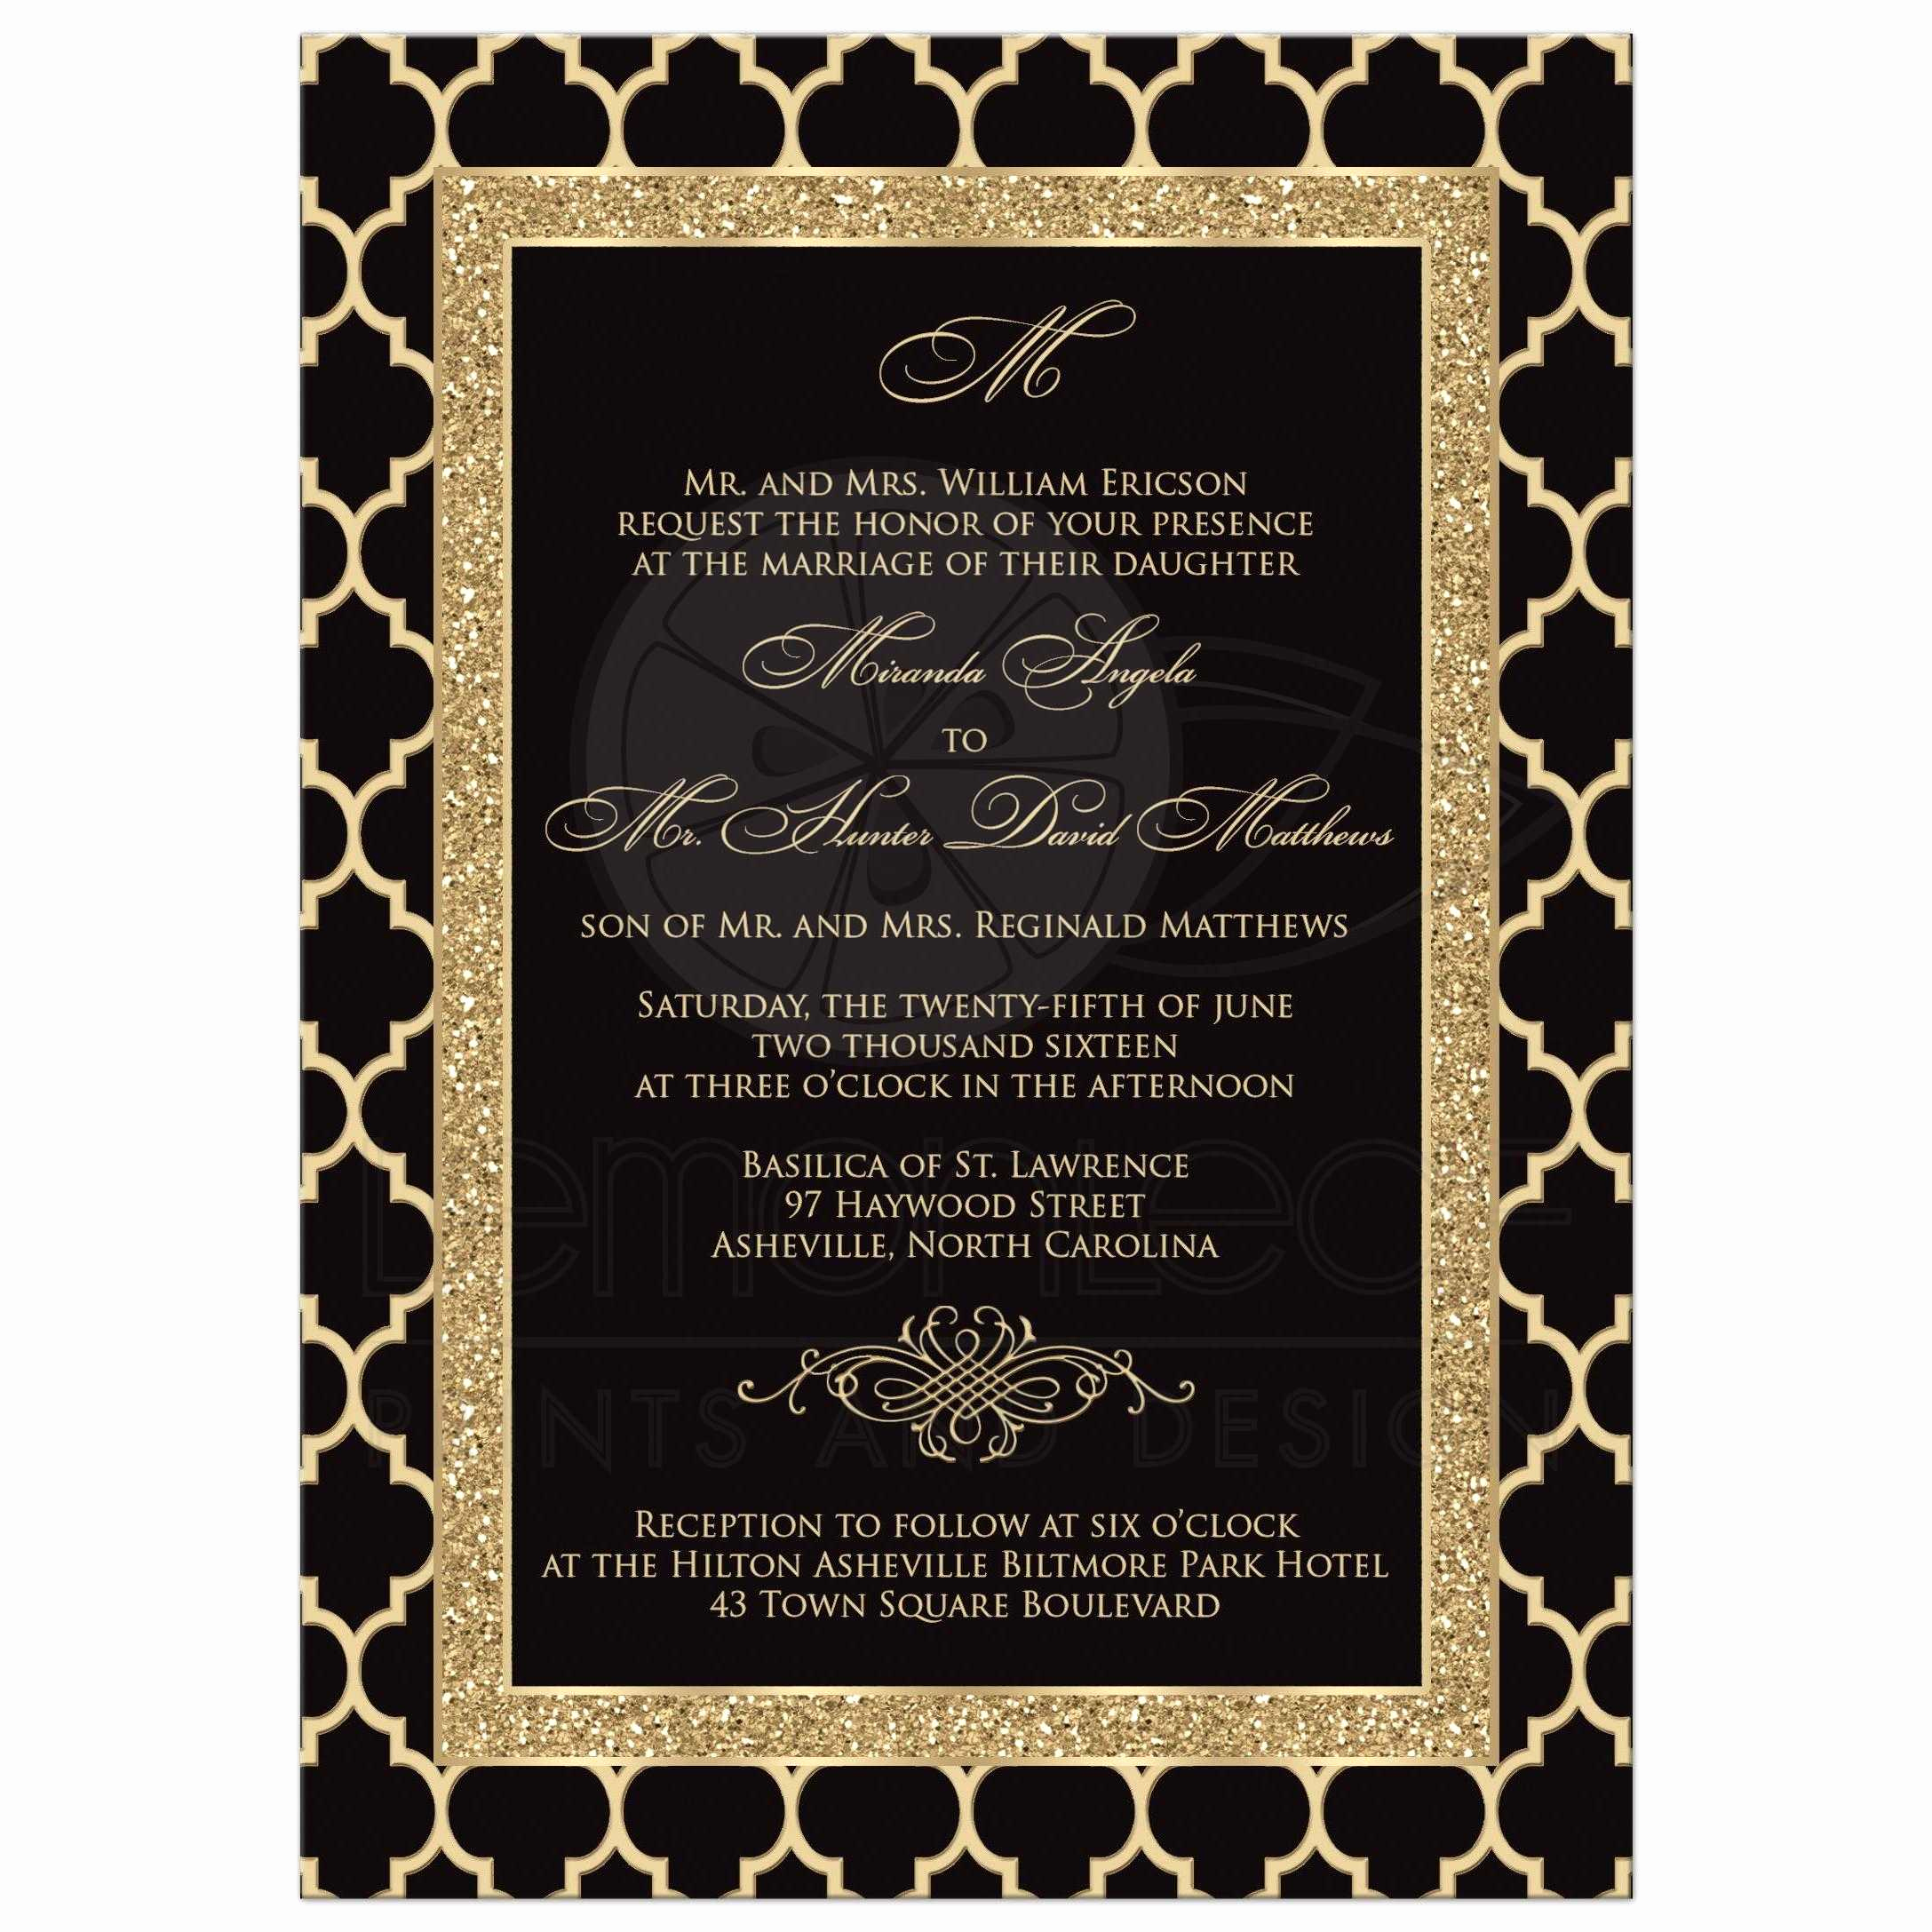 Black and Gold Invitation Template New Monogrammed Wedding Invitation